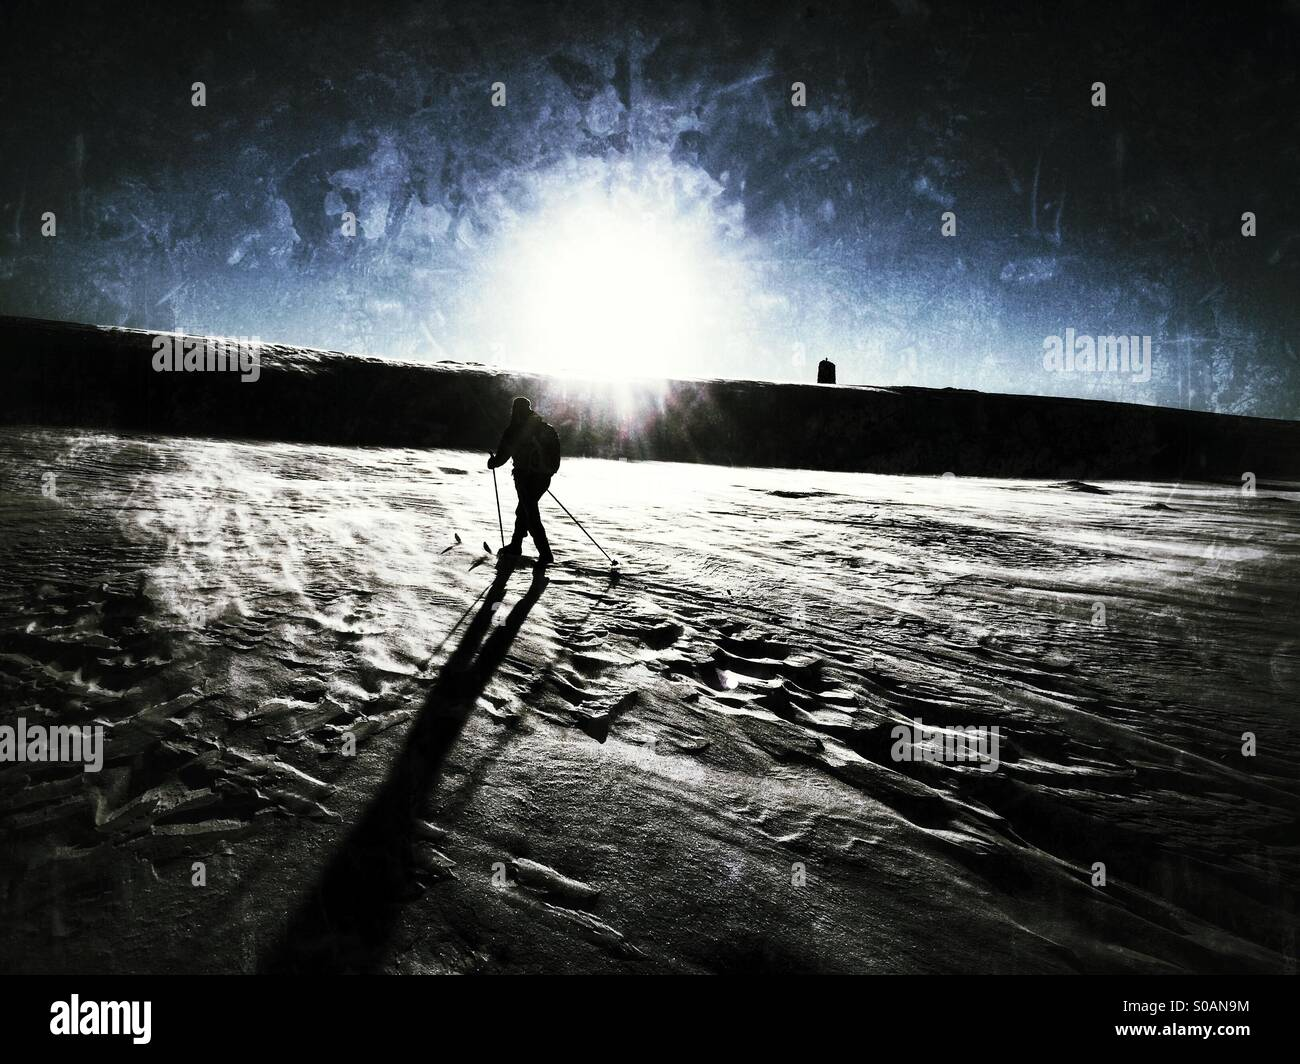 Nordic skier going cross-country skiing into the sun casting a long shadow. Stock Photo